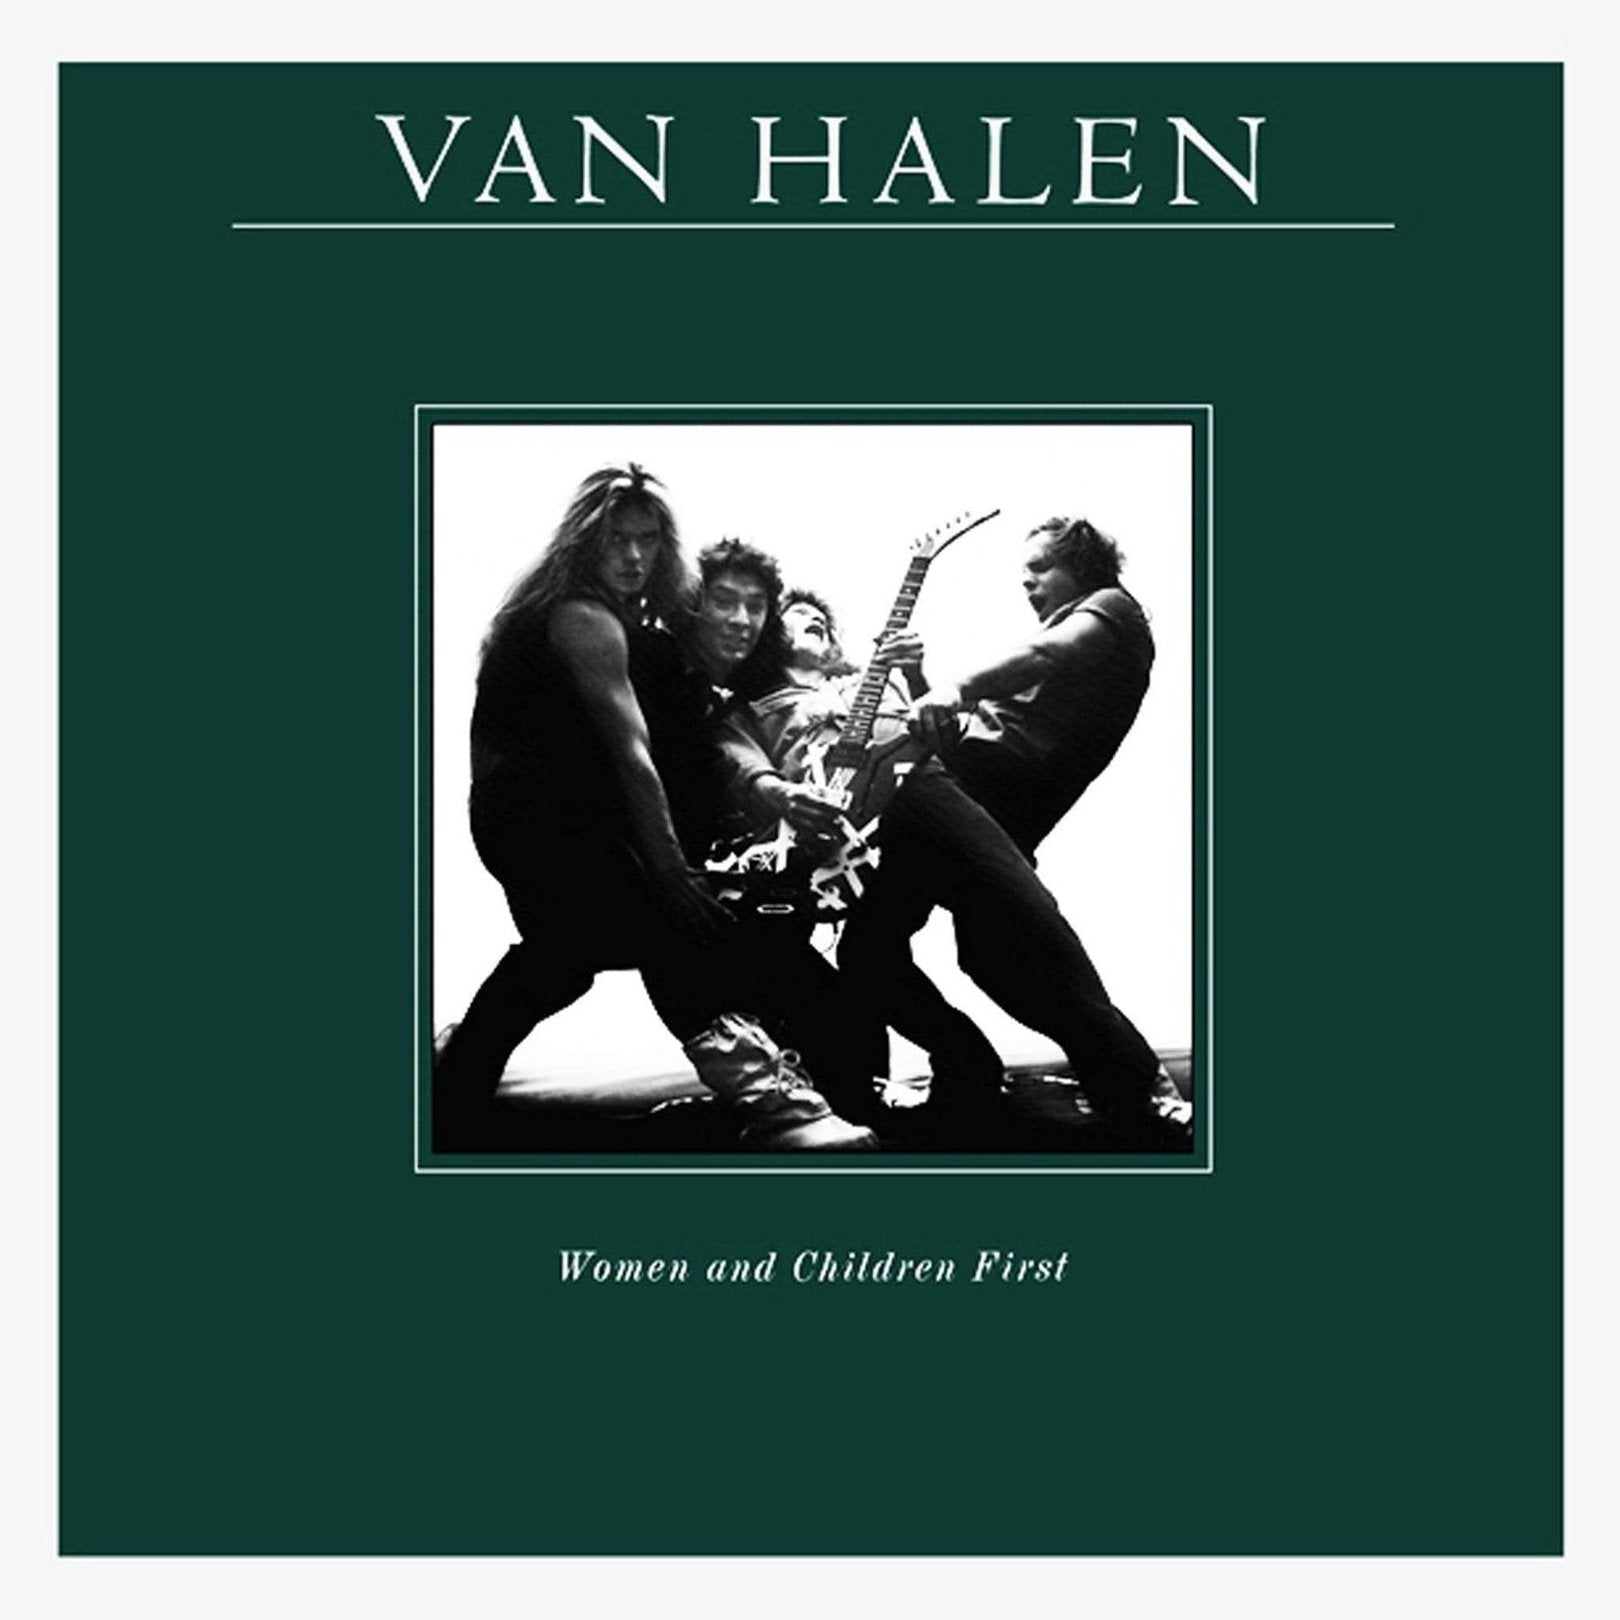 Van Halen - Van Halen - Women And Children First - Mini Lp - Cd